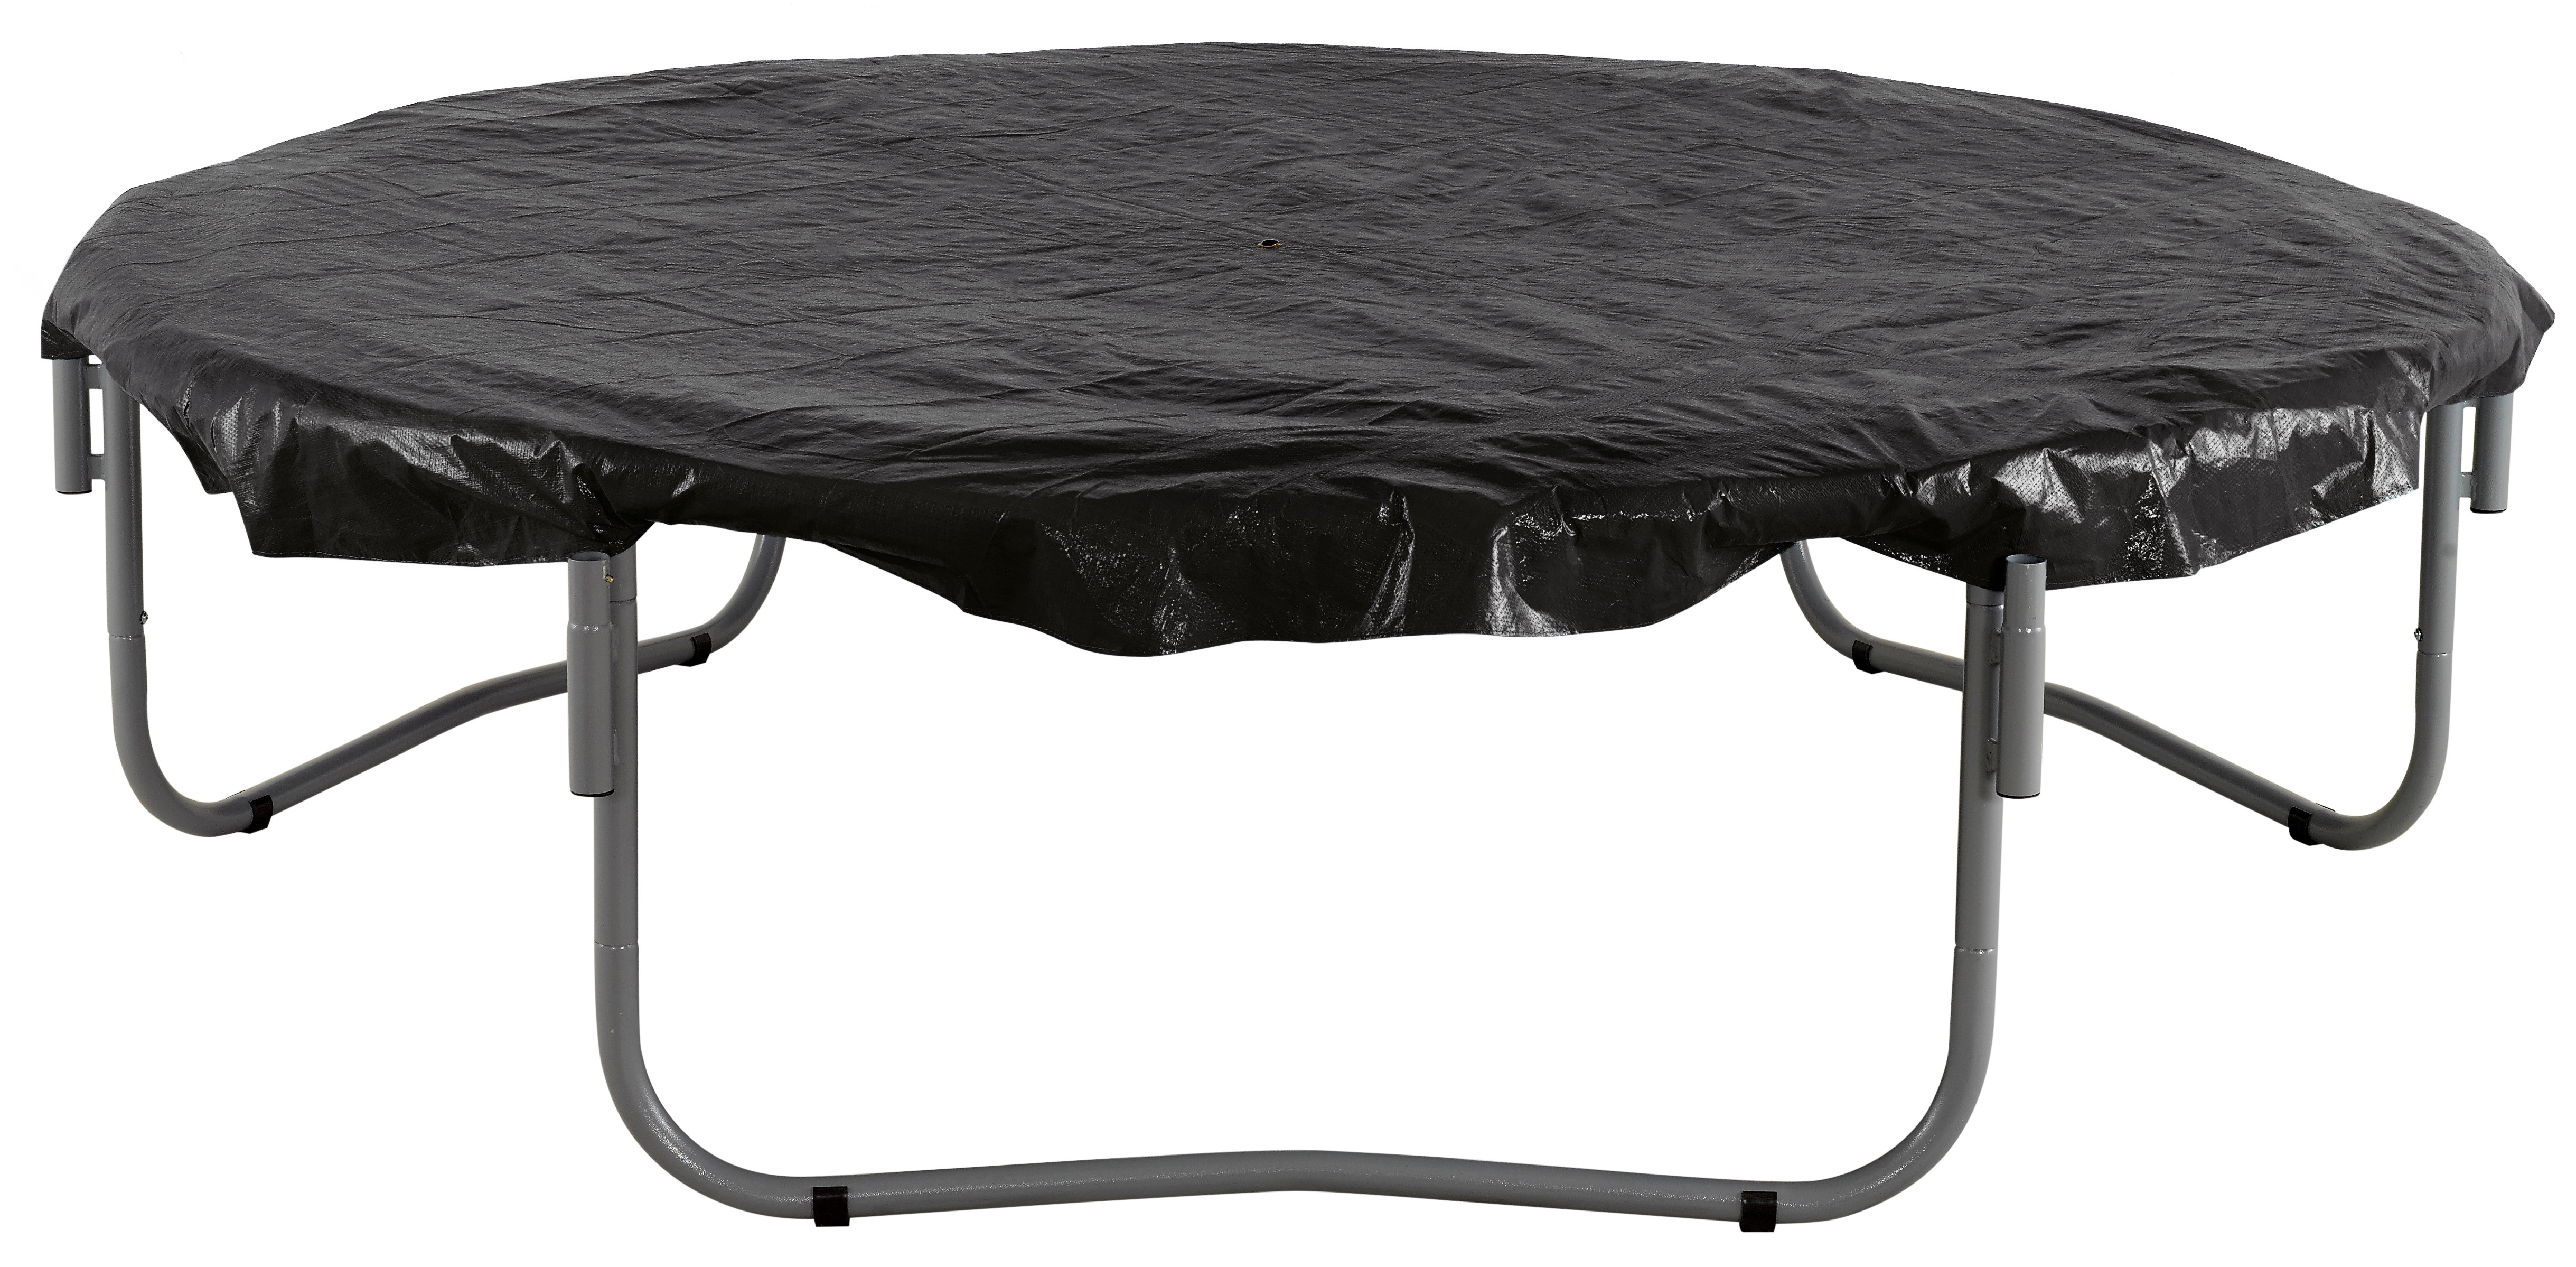 16ft Trampoline Cover - Waterproof and UV Cover for Weather, Wind, Rain Protection of Round Trampolines - Black